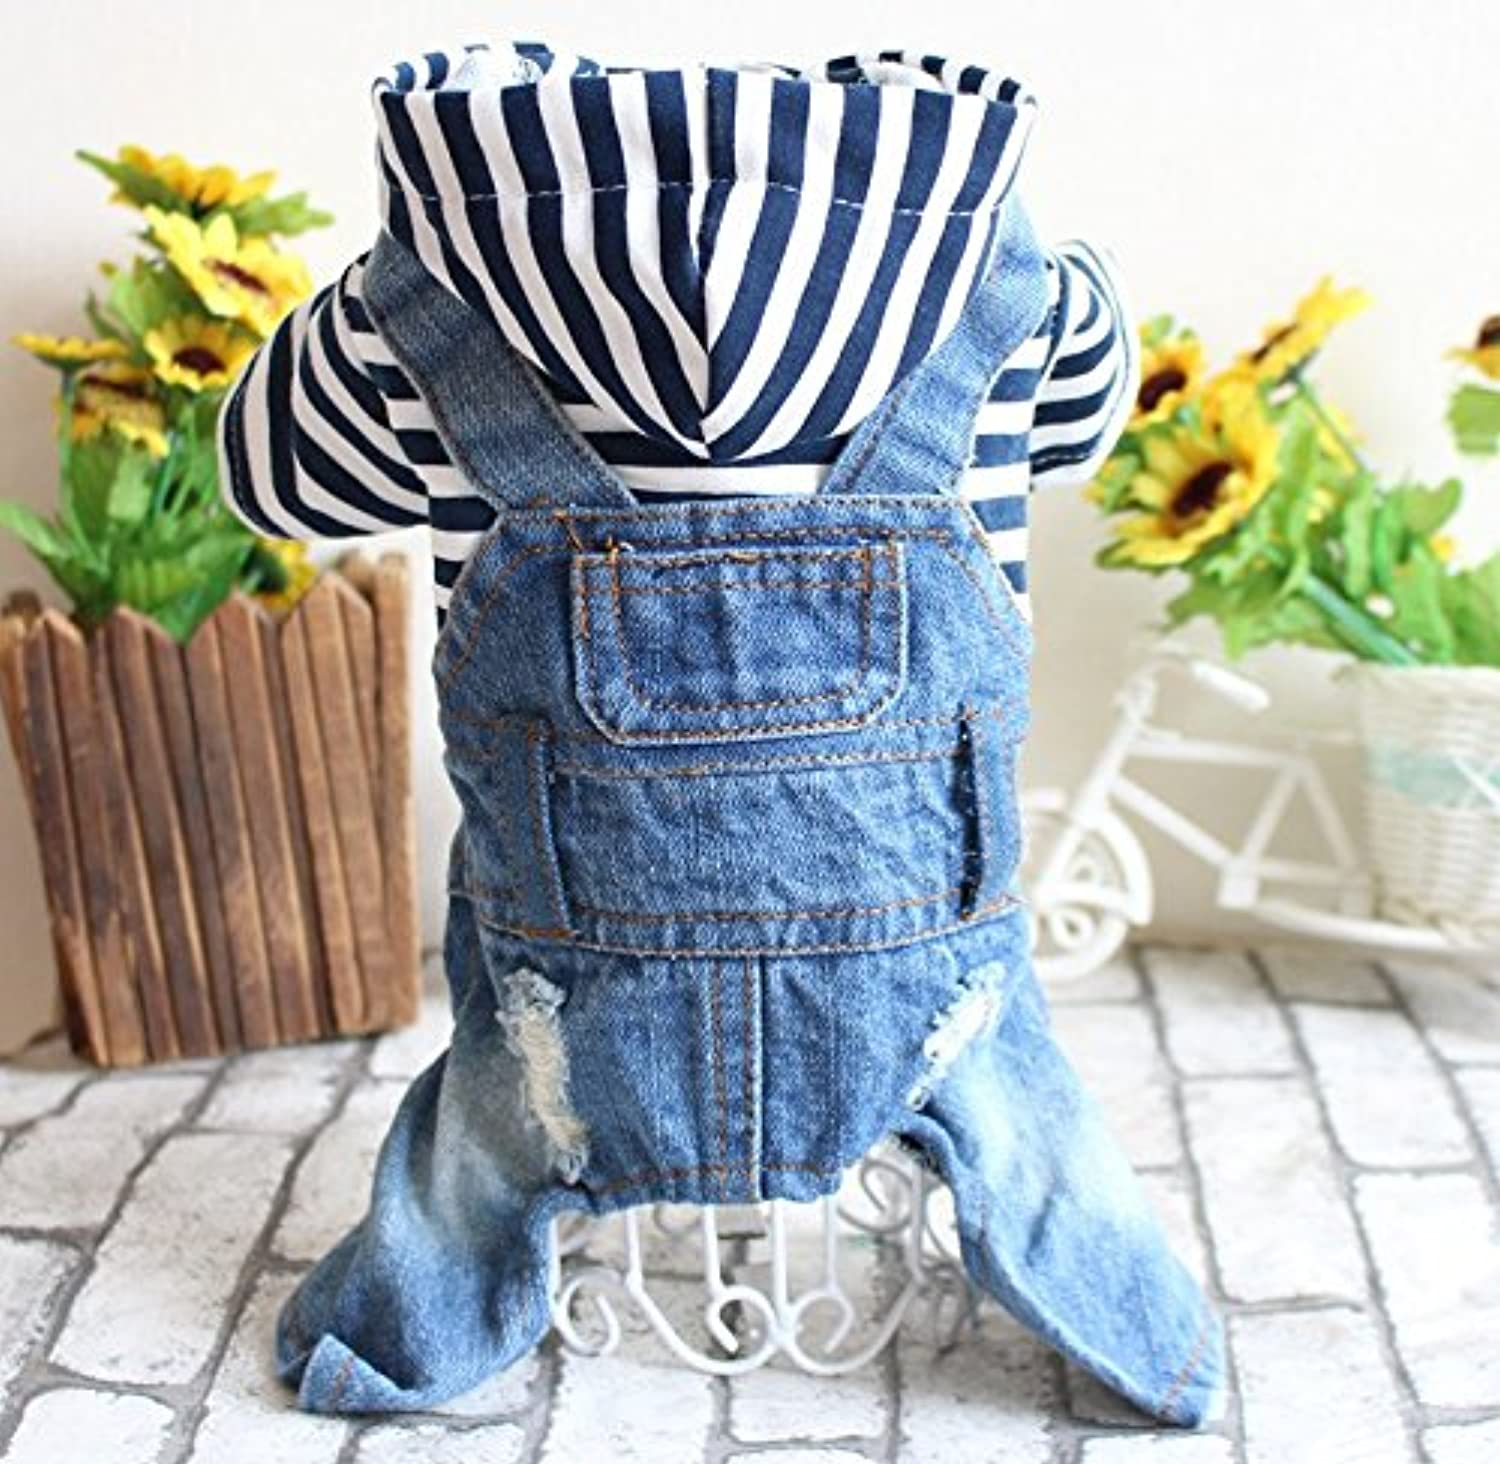 Lvon Pet Clothes Dog Jeans Jacket Cool bluee Denim Coat Small Medium Dogs Lapel Vests Classic Hoodies Puppy bluee Vintage Washed Clothes  Small